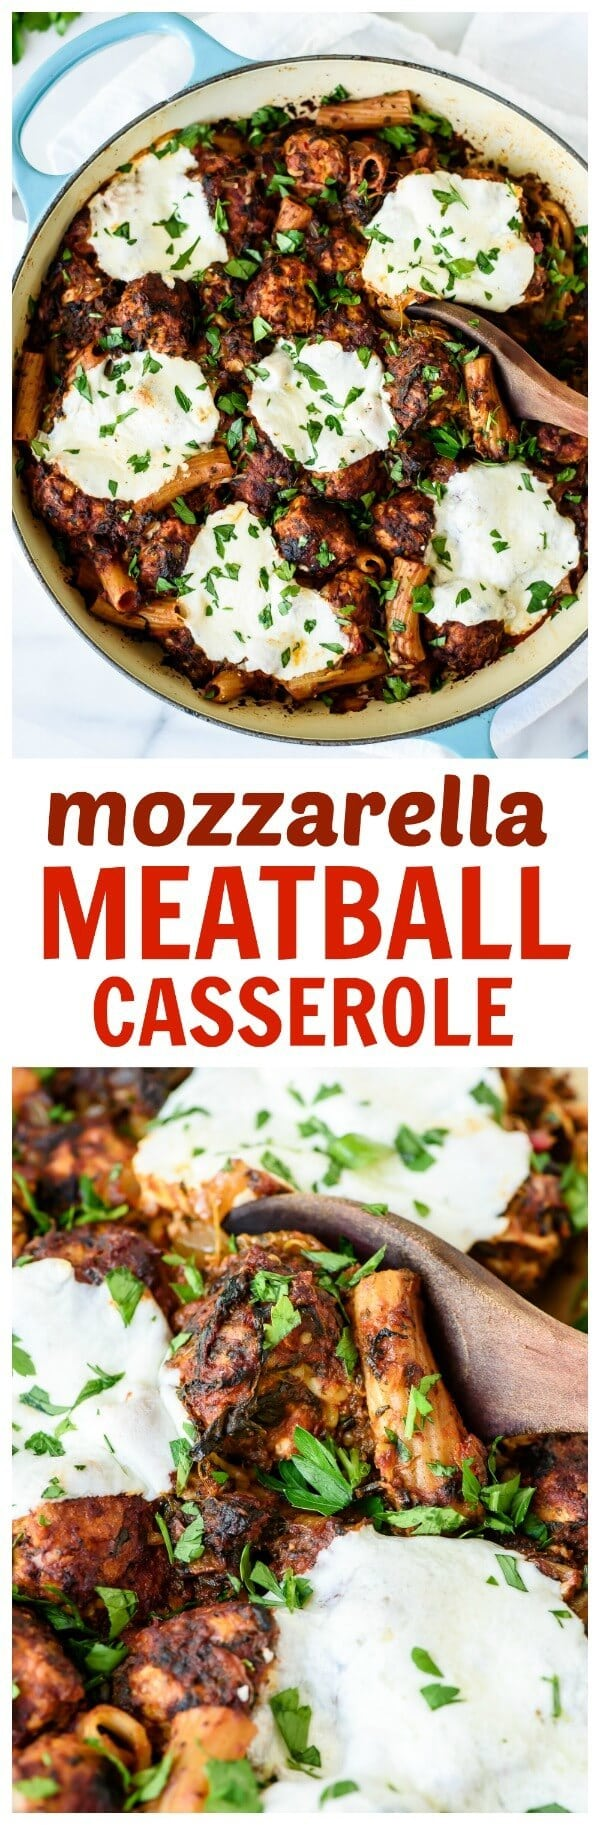 Mozzarella Meatball Casserole. Gooey cheese, zesty turkey meatballs and pasta baked together into one incredible recipe your entire family will love!